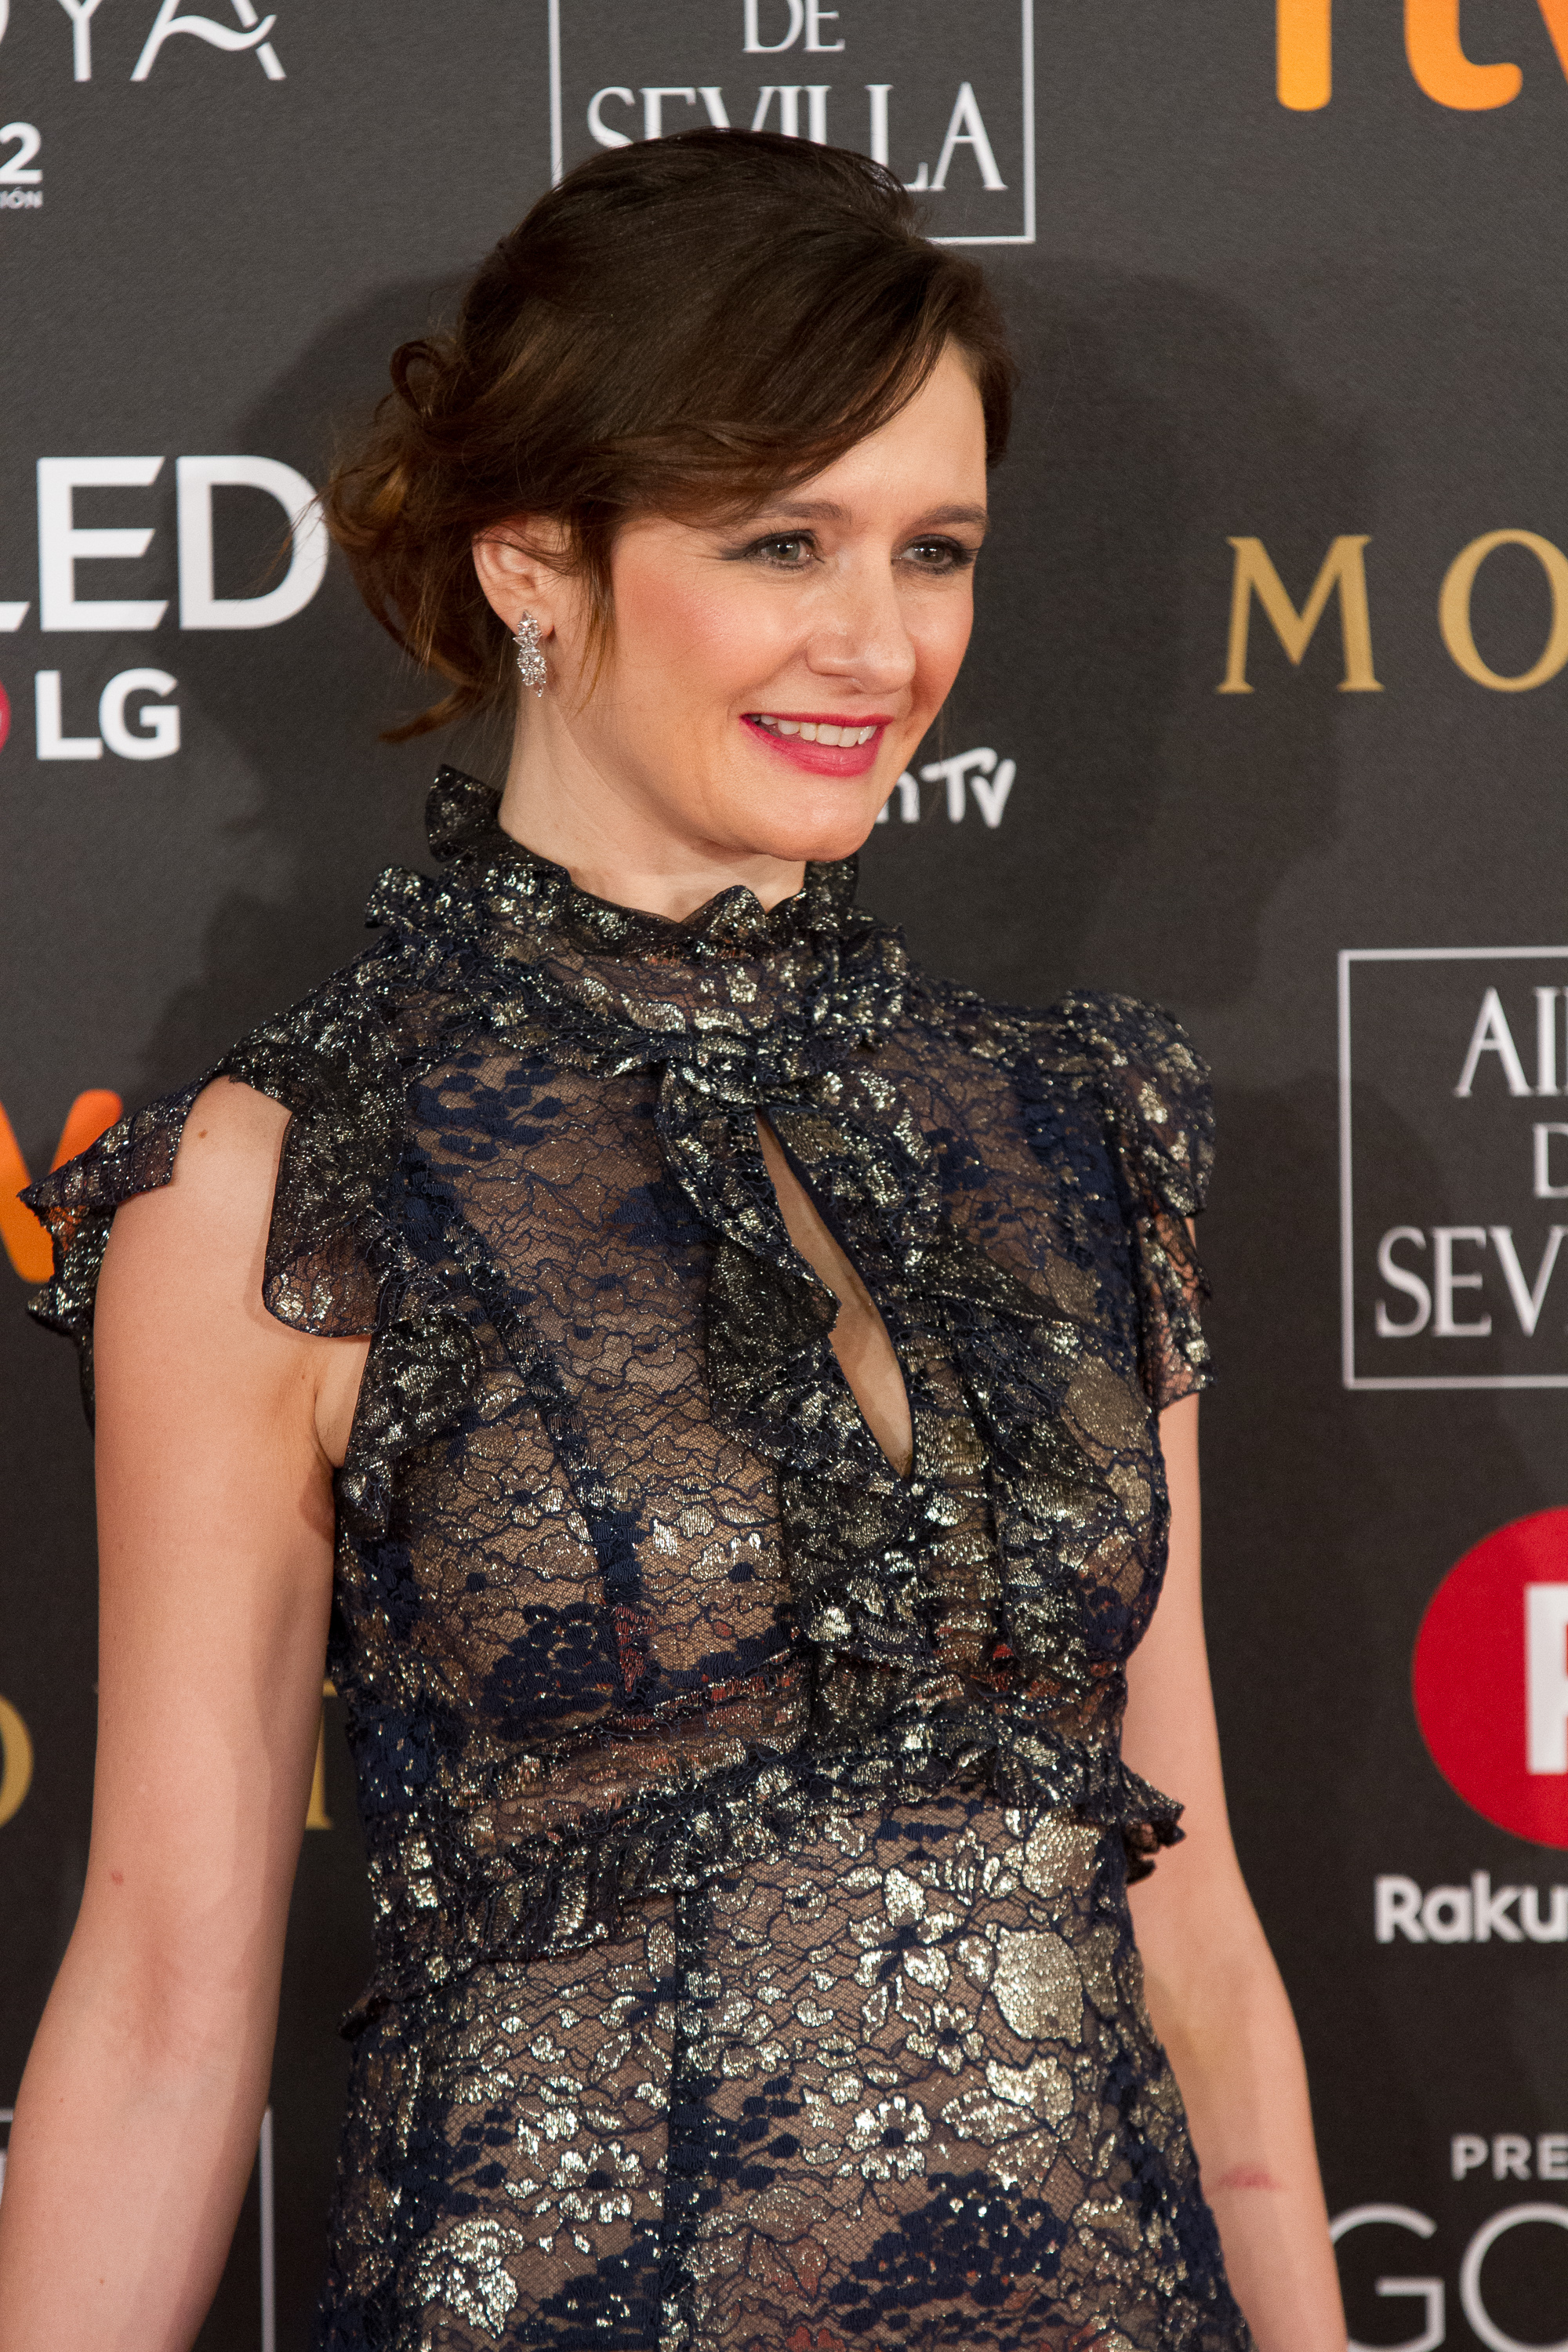 Pictures Emily Mortimer naked (96 photos), Sexy, Leaked, Selfie, braless 2006